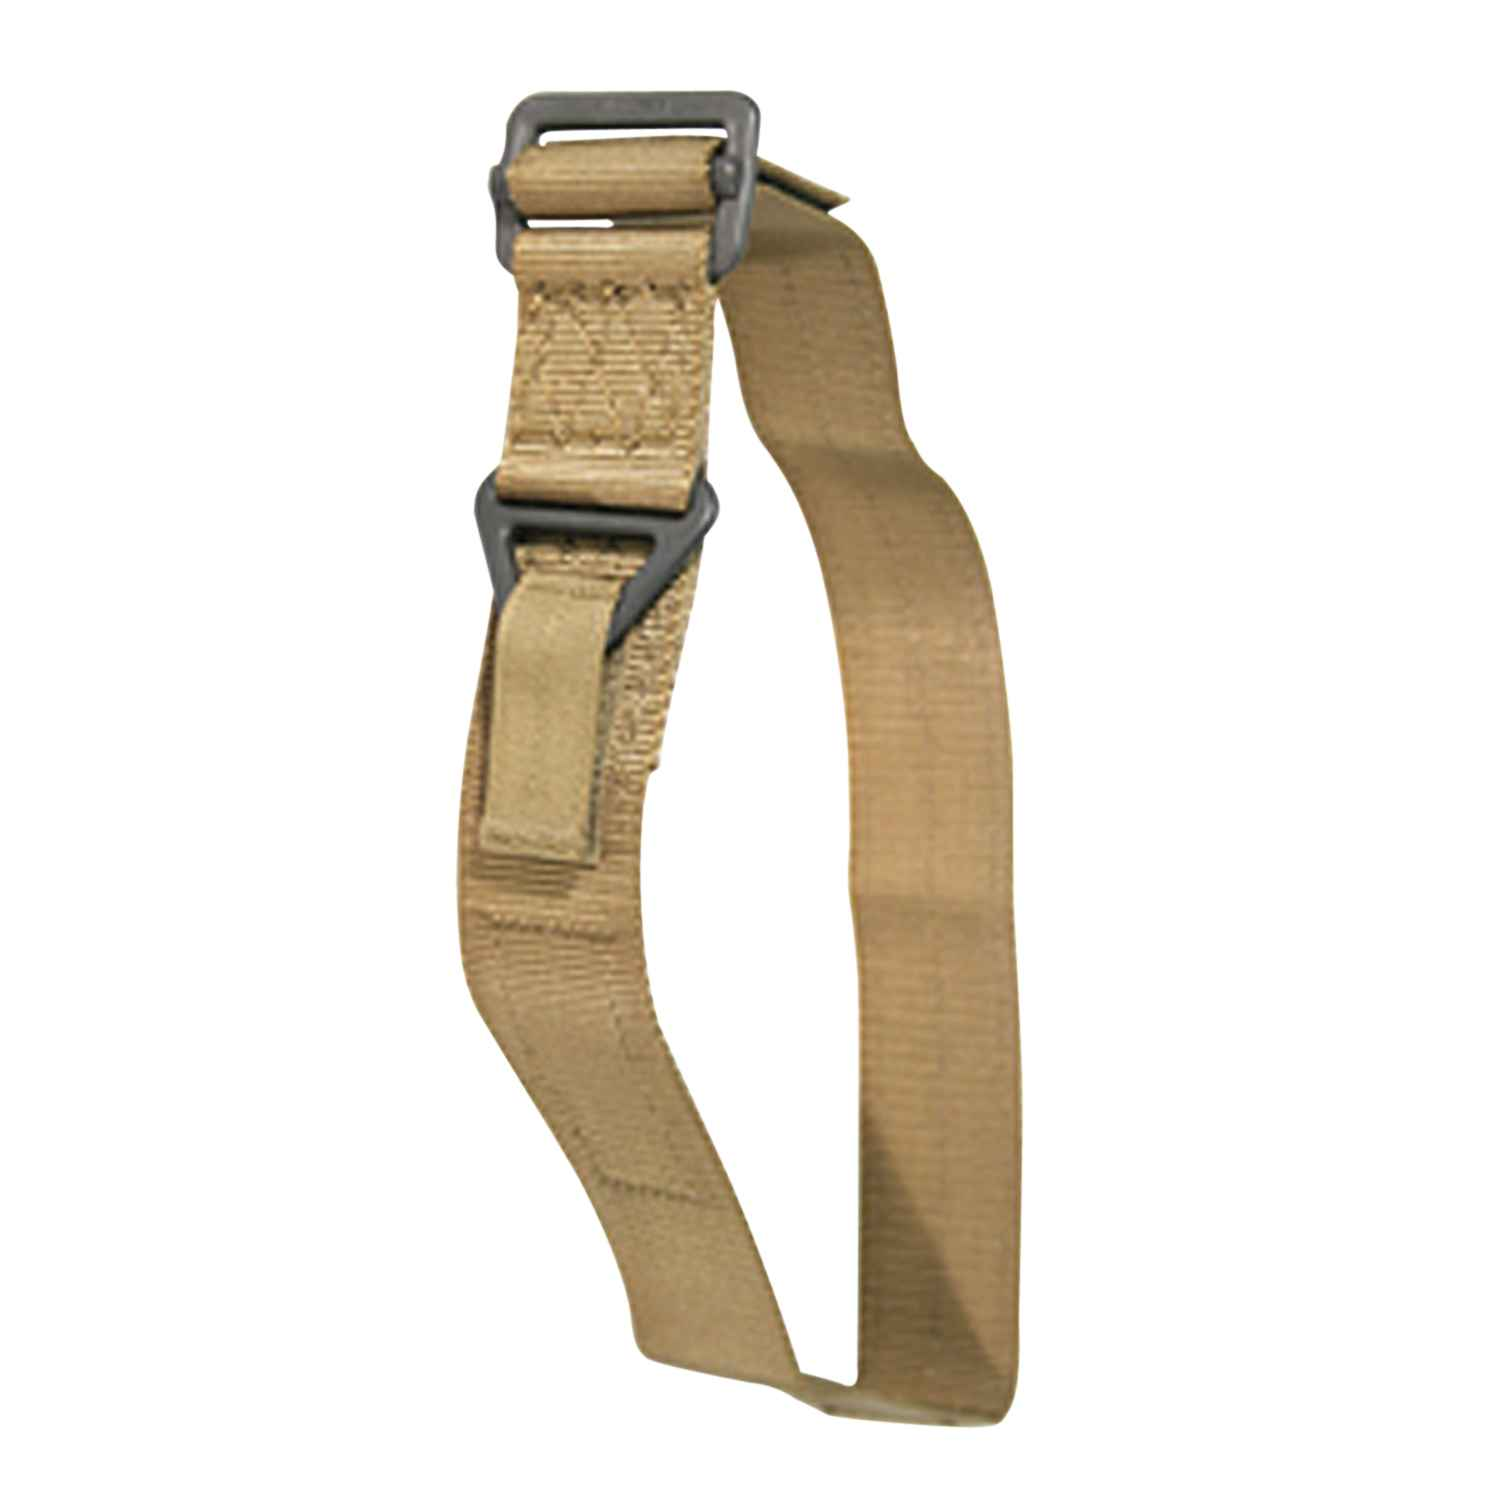 Blackhawk CQB Rescue Riggers Belt, Large, Coyote Tan